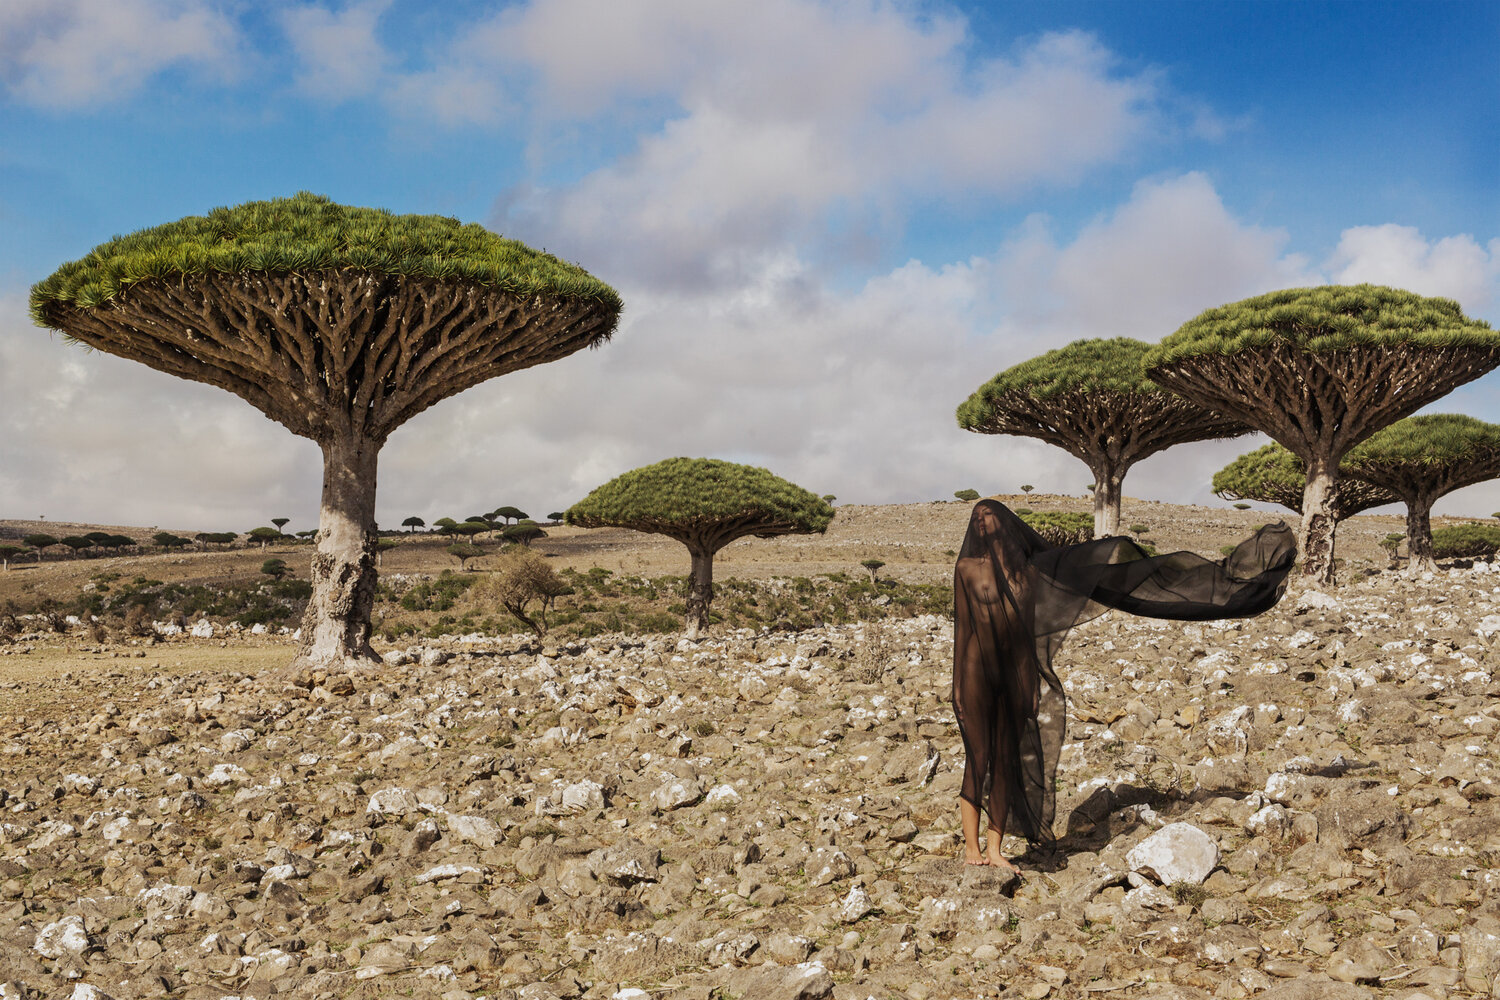 Salvation of Socotra, (Socotra, Yemen), 2016